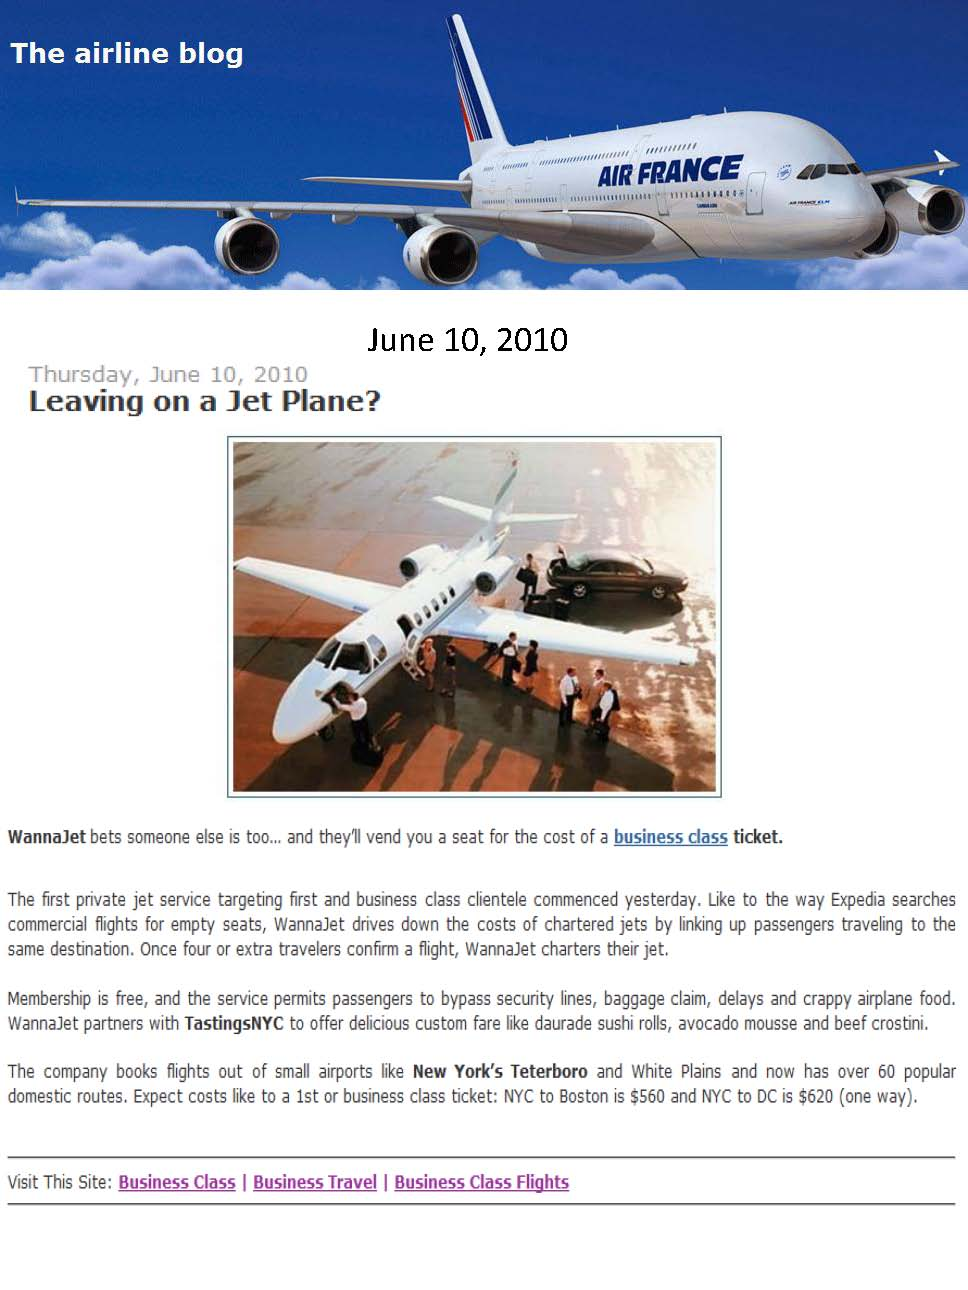 WannaJet Featured in The Airline Blog (Travel PR)